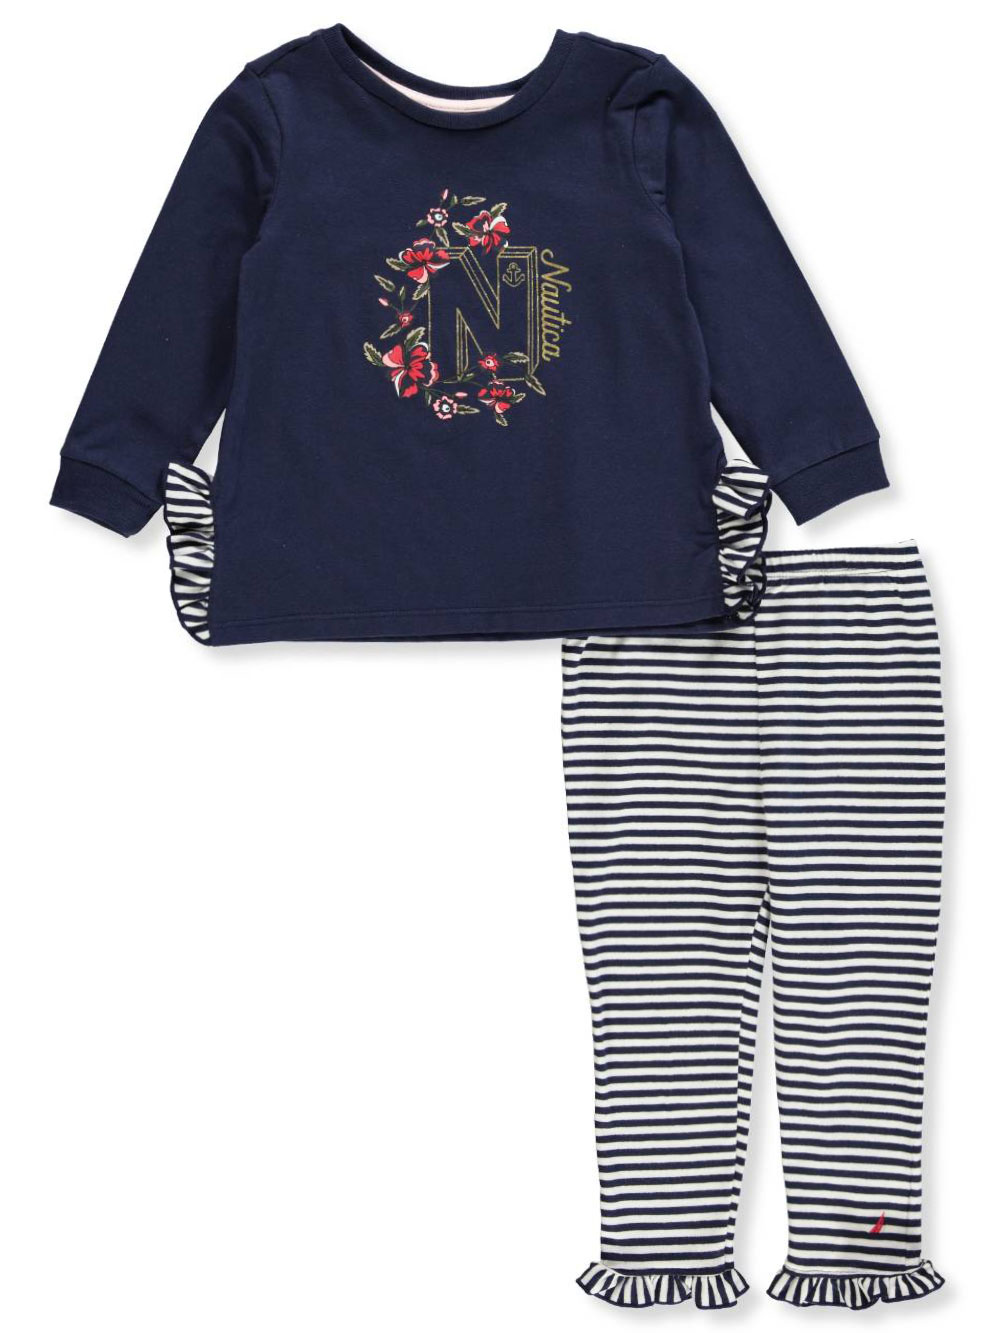 fcafd6af54f52 Baby Girls' 2-Piece Leggings Set Outfit by Nautica in Navy/multi from  Cookie's Kids